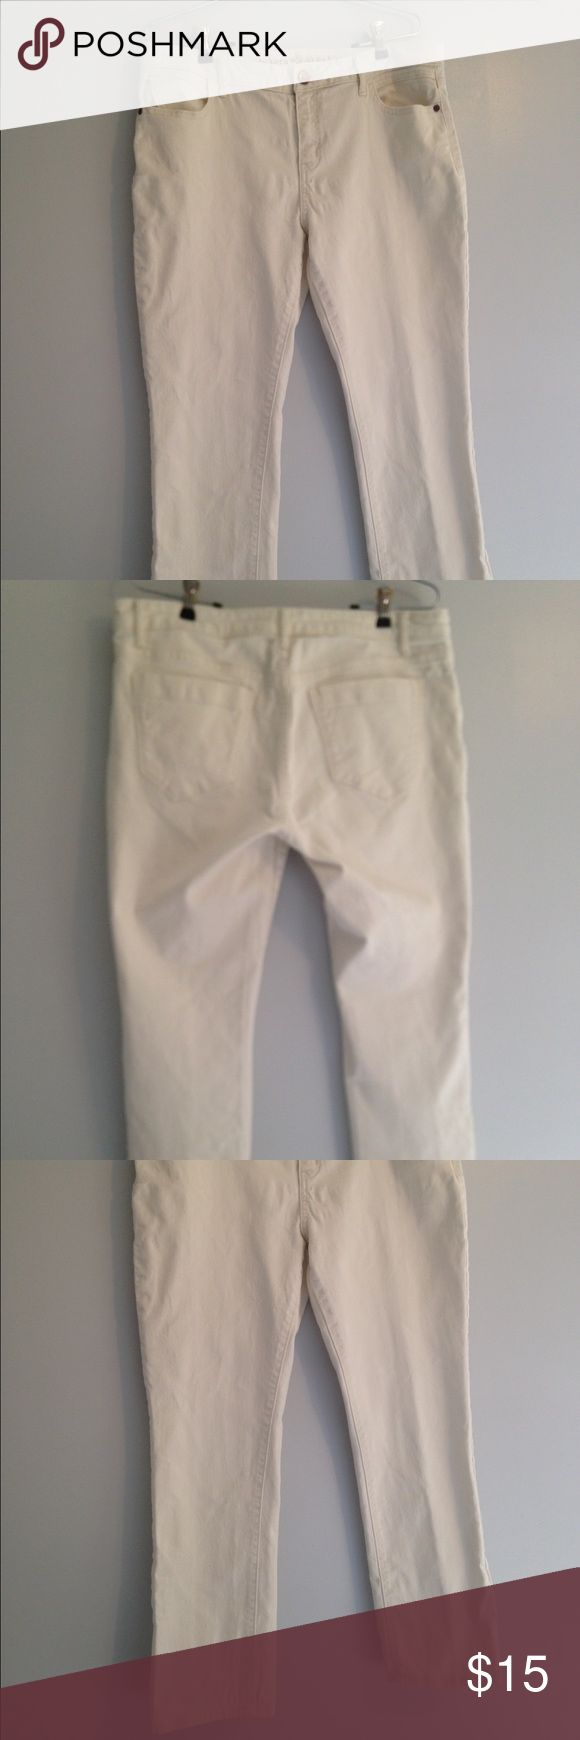 """Vera Wang, Simply Vera Cropped jeans Vera Wang, Simply Vera off-white denim ankle-length jeans, inseam = 27"""", shown with Loft top available for sale in a separate listing. Simply Vera Vera Wang Jeans Ankle & Cropped"""